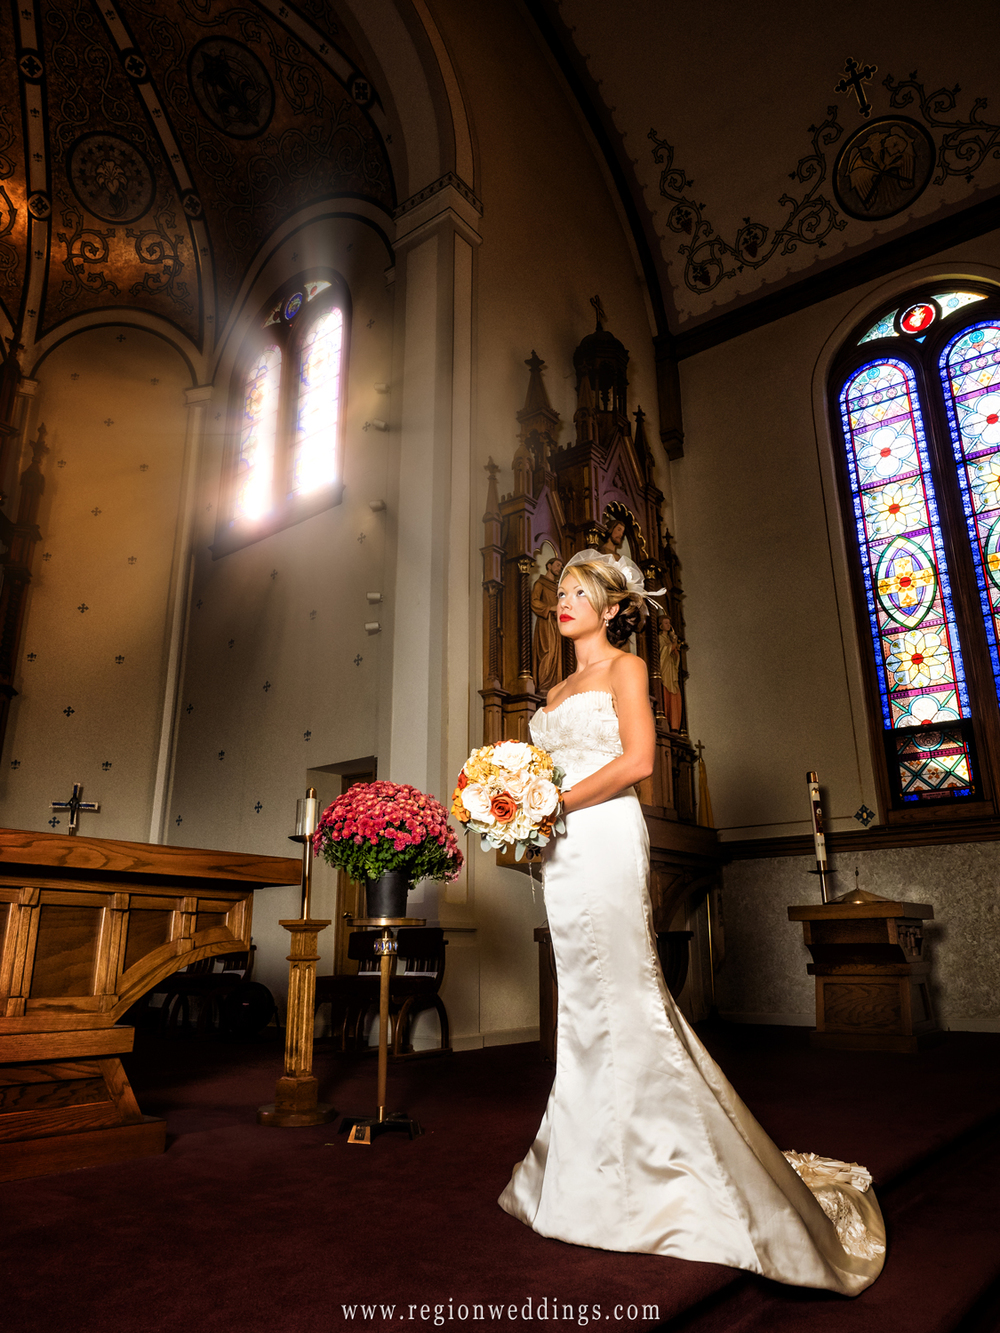 The bride on the altar at St. Mary's Church in Crown Point.